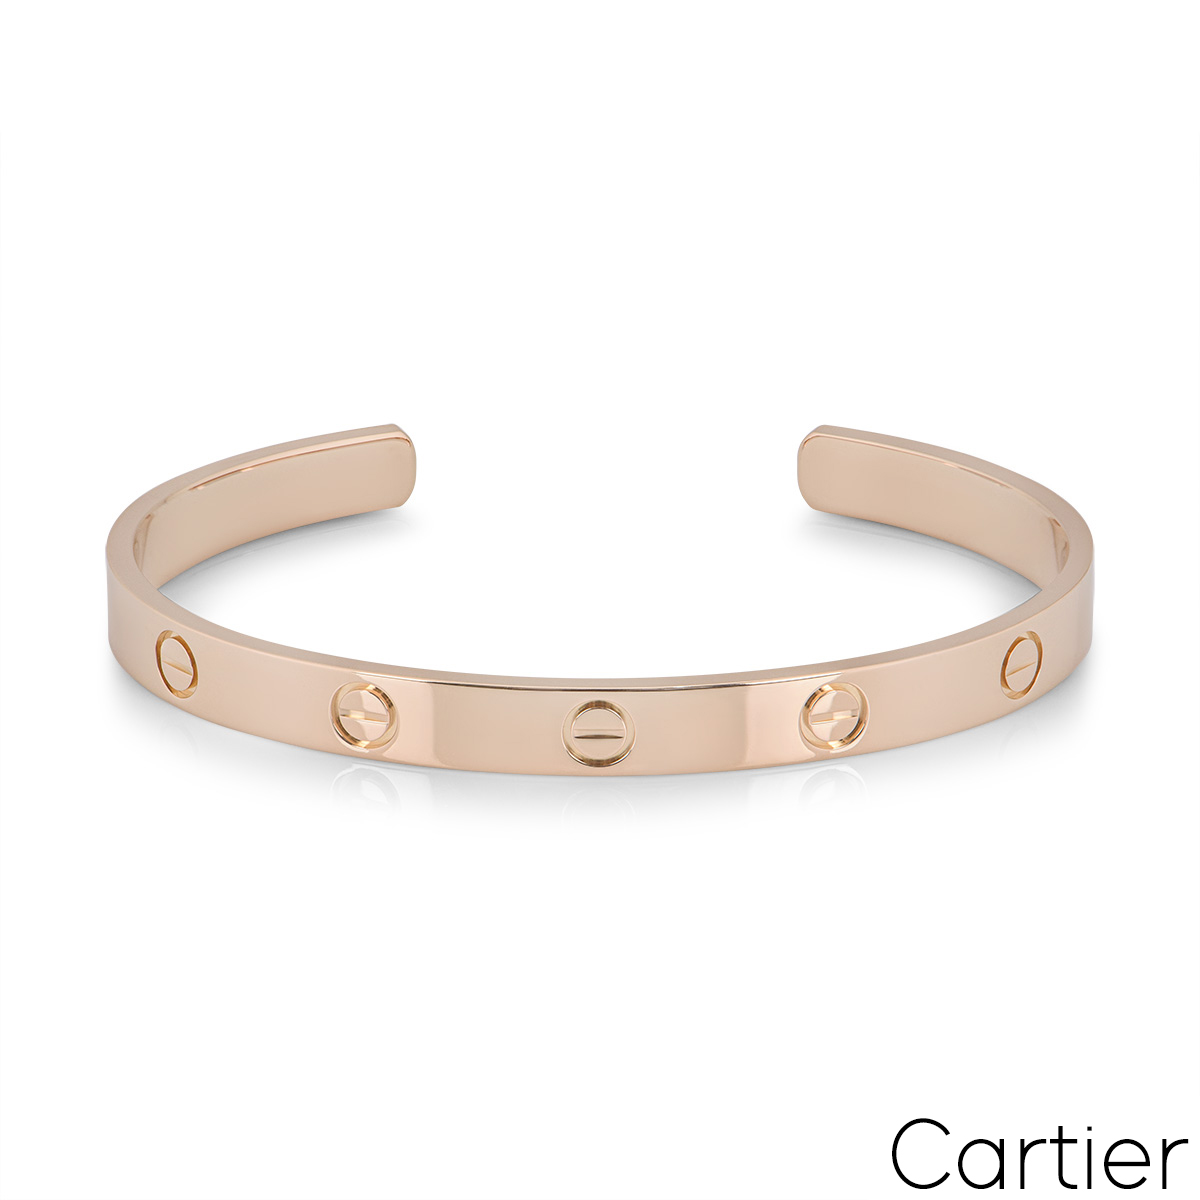 Cartier Rose Gold Plain Cuff Love Bracelet Size 19 B6032619